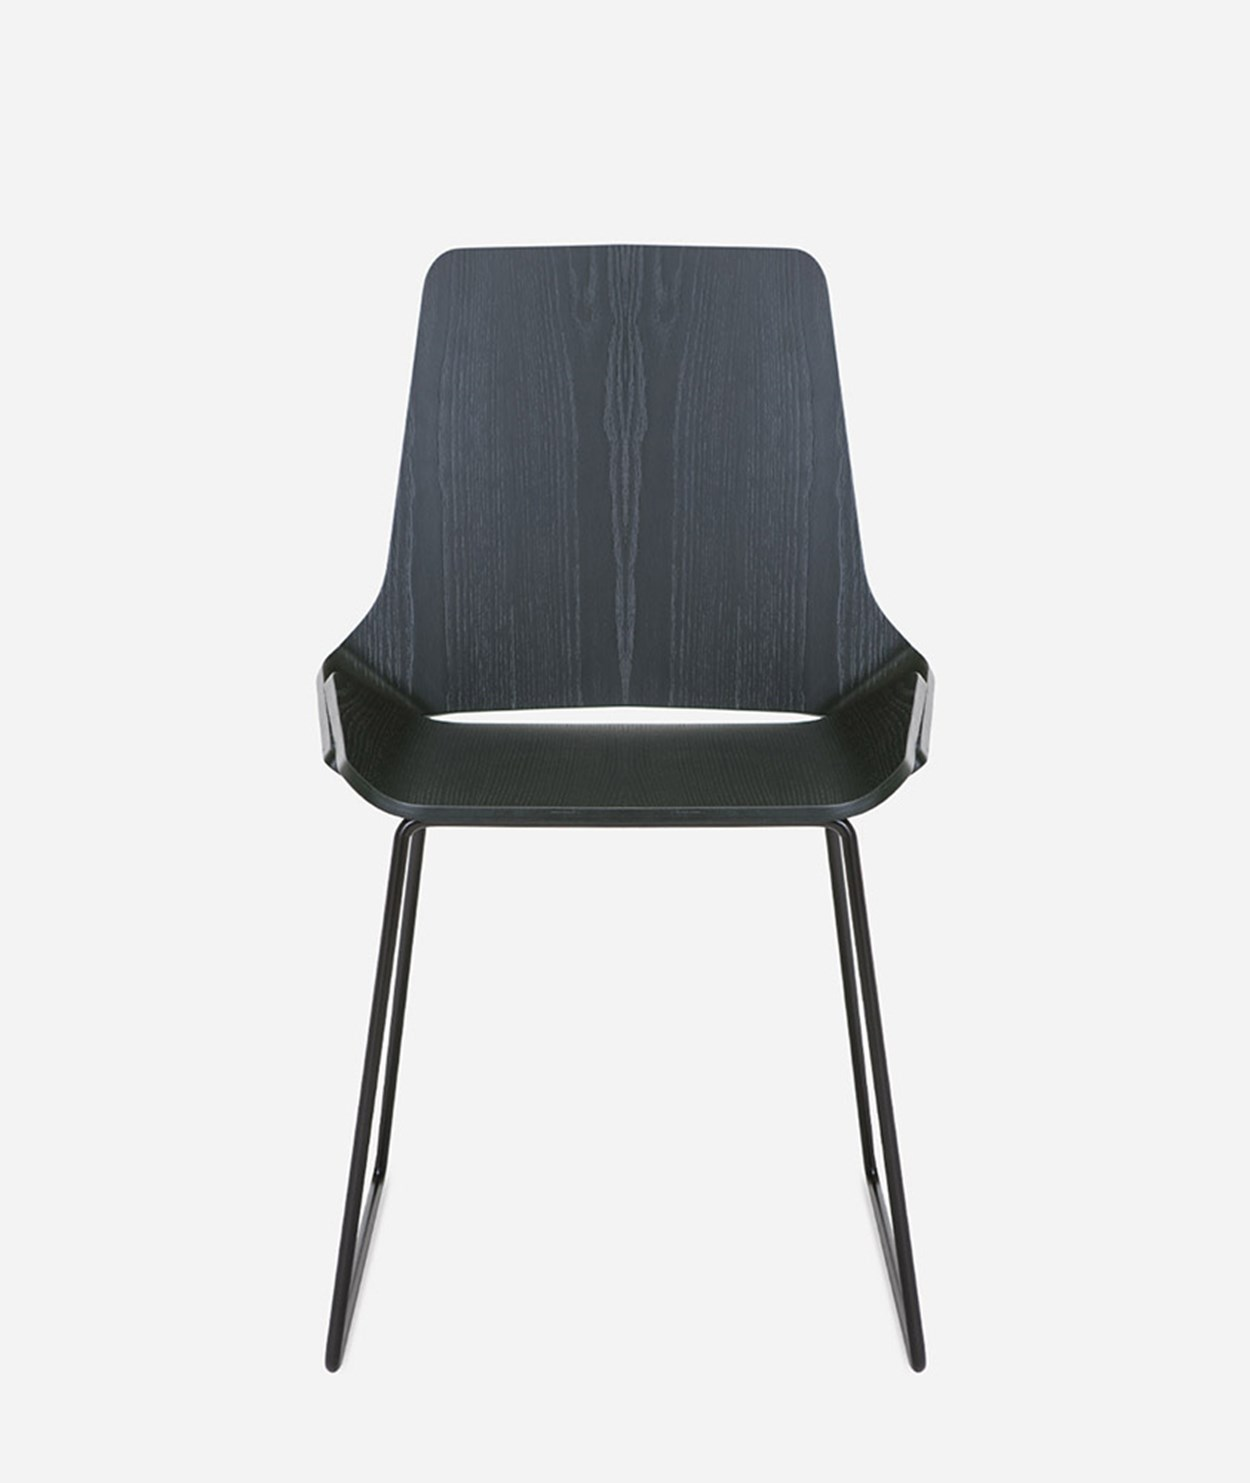 verges-kimmi-254-chair (1).jpg